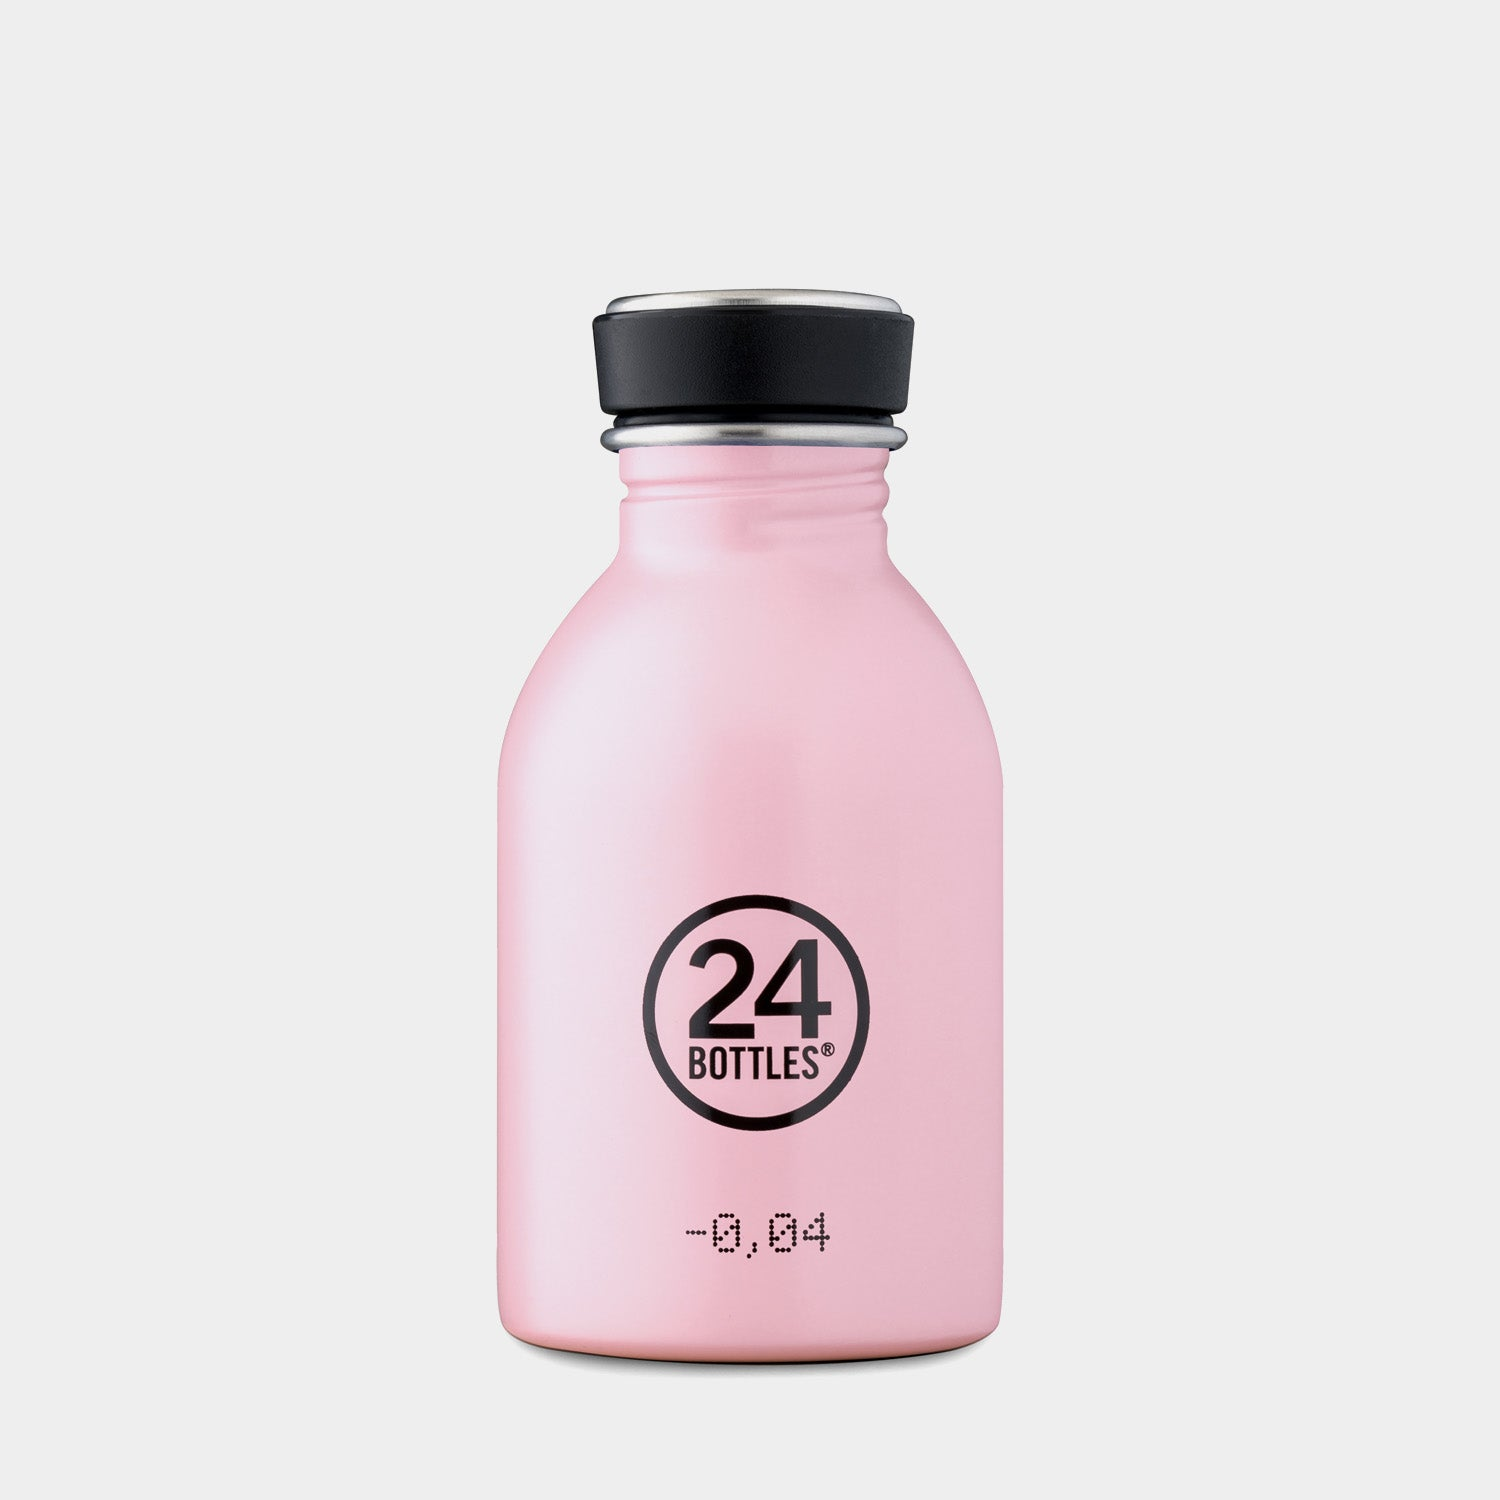 24Bottles Candy Pink Urban Bottle - 250ml